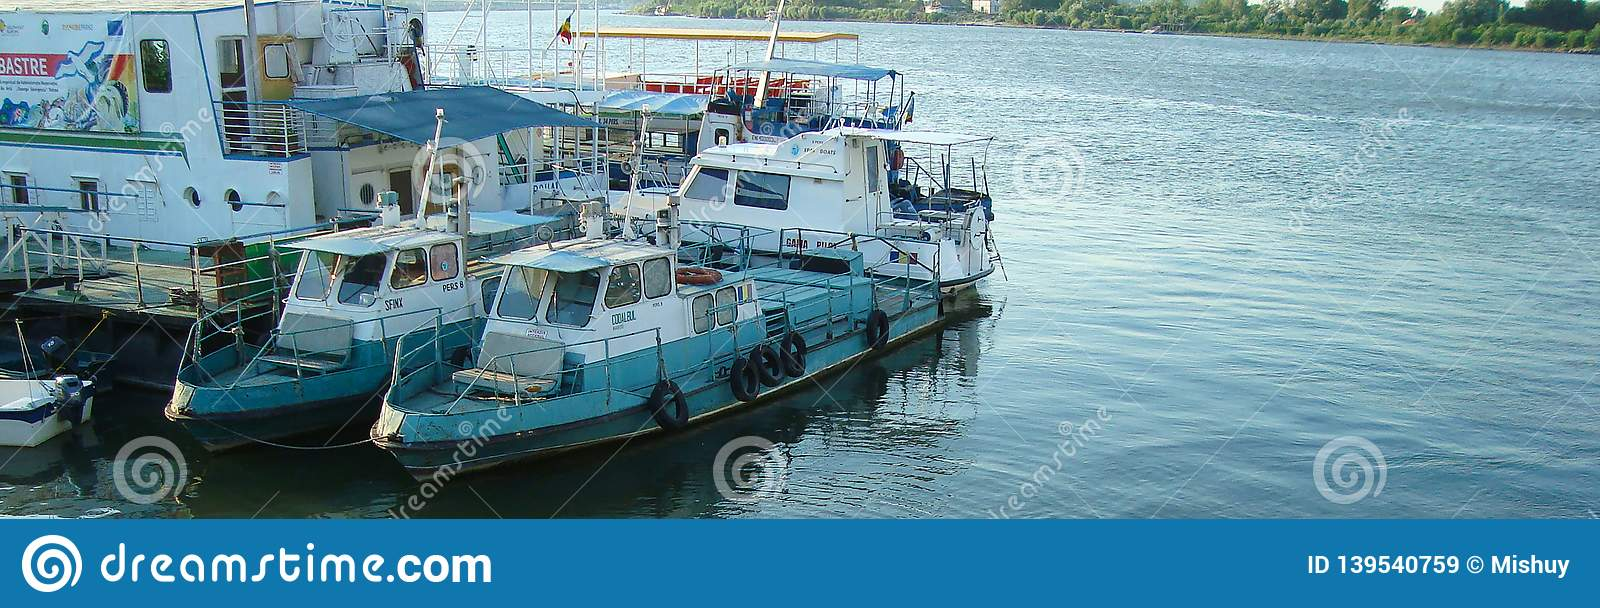 Fishing boats on Tulcea Harbour. Concept BANNER